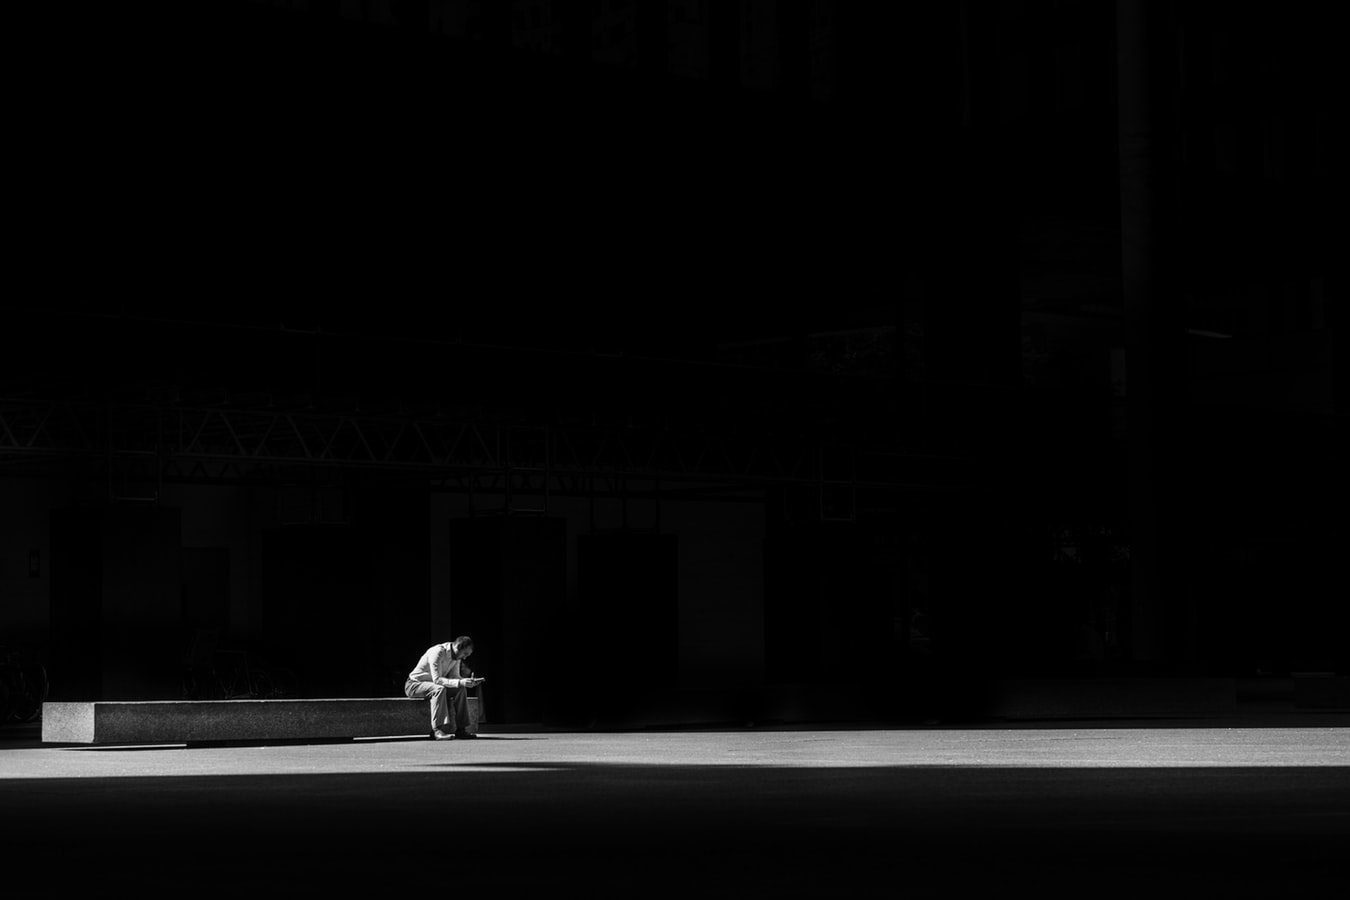 image of man sitting alone at bench looking at phone